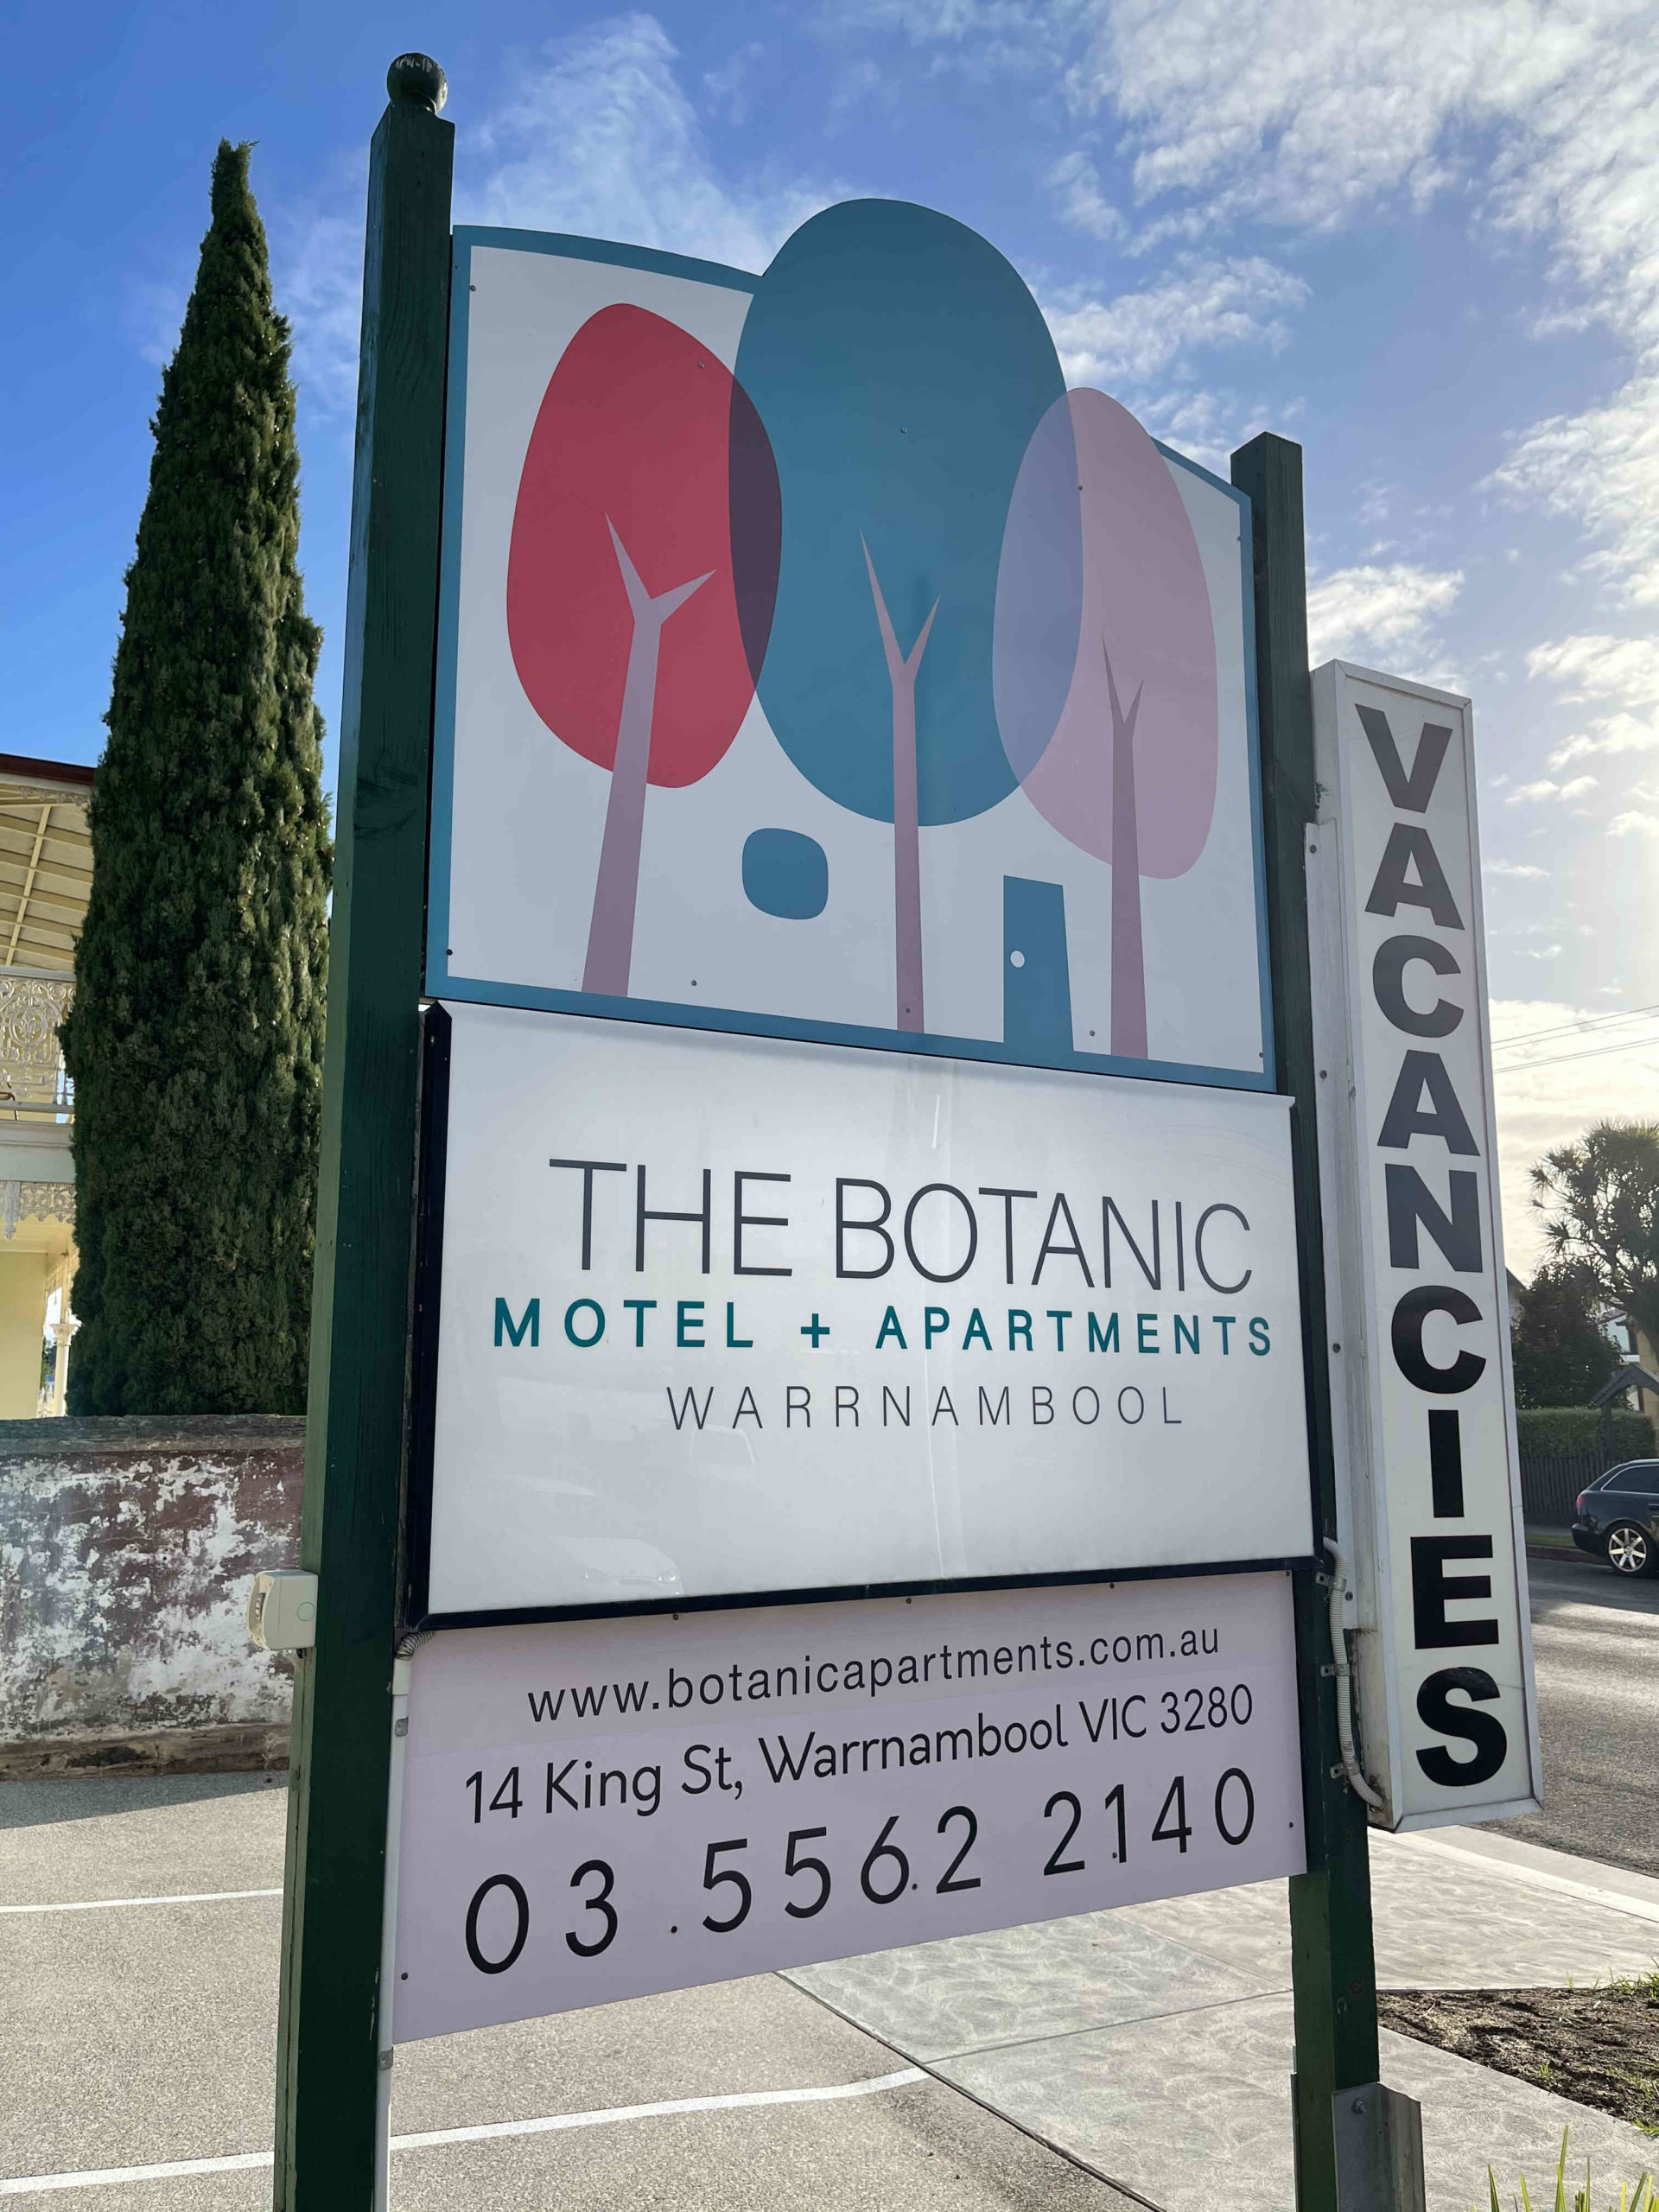 Exterior sign at front of property of the botanic motel and apartments